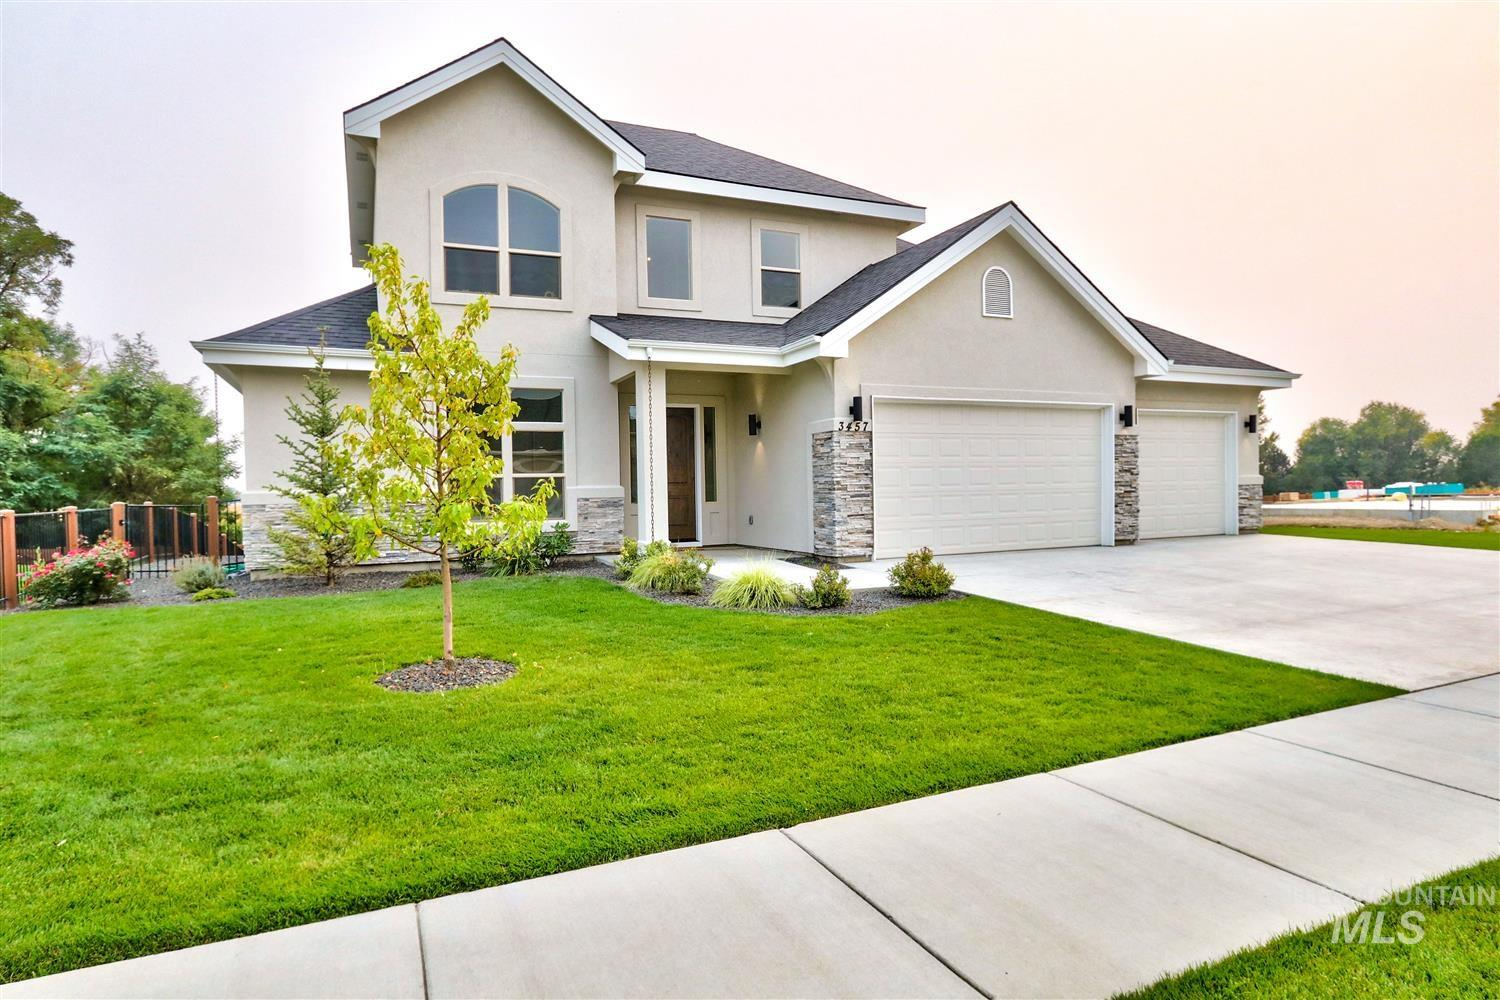 Photo for 3457 W Barefoot St., Eagle, ID 83616 (MLS # 98781041)